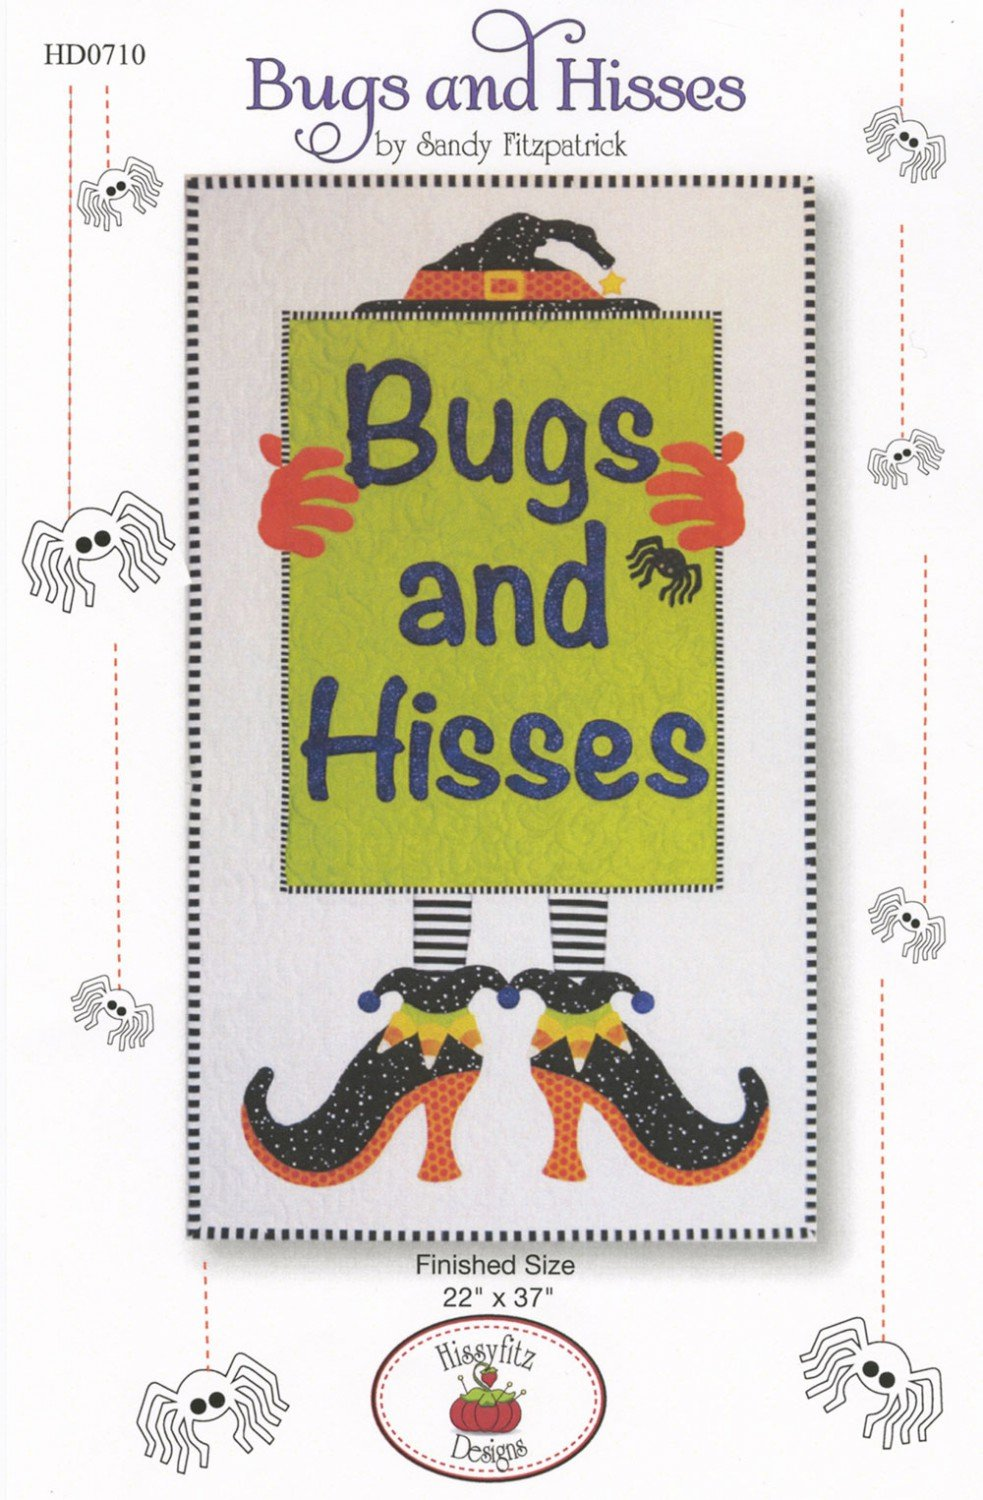 Bugs and Hisses from Hizzyfitz Designs